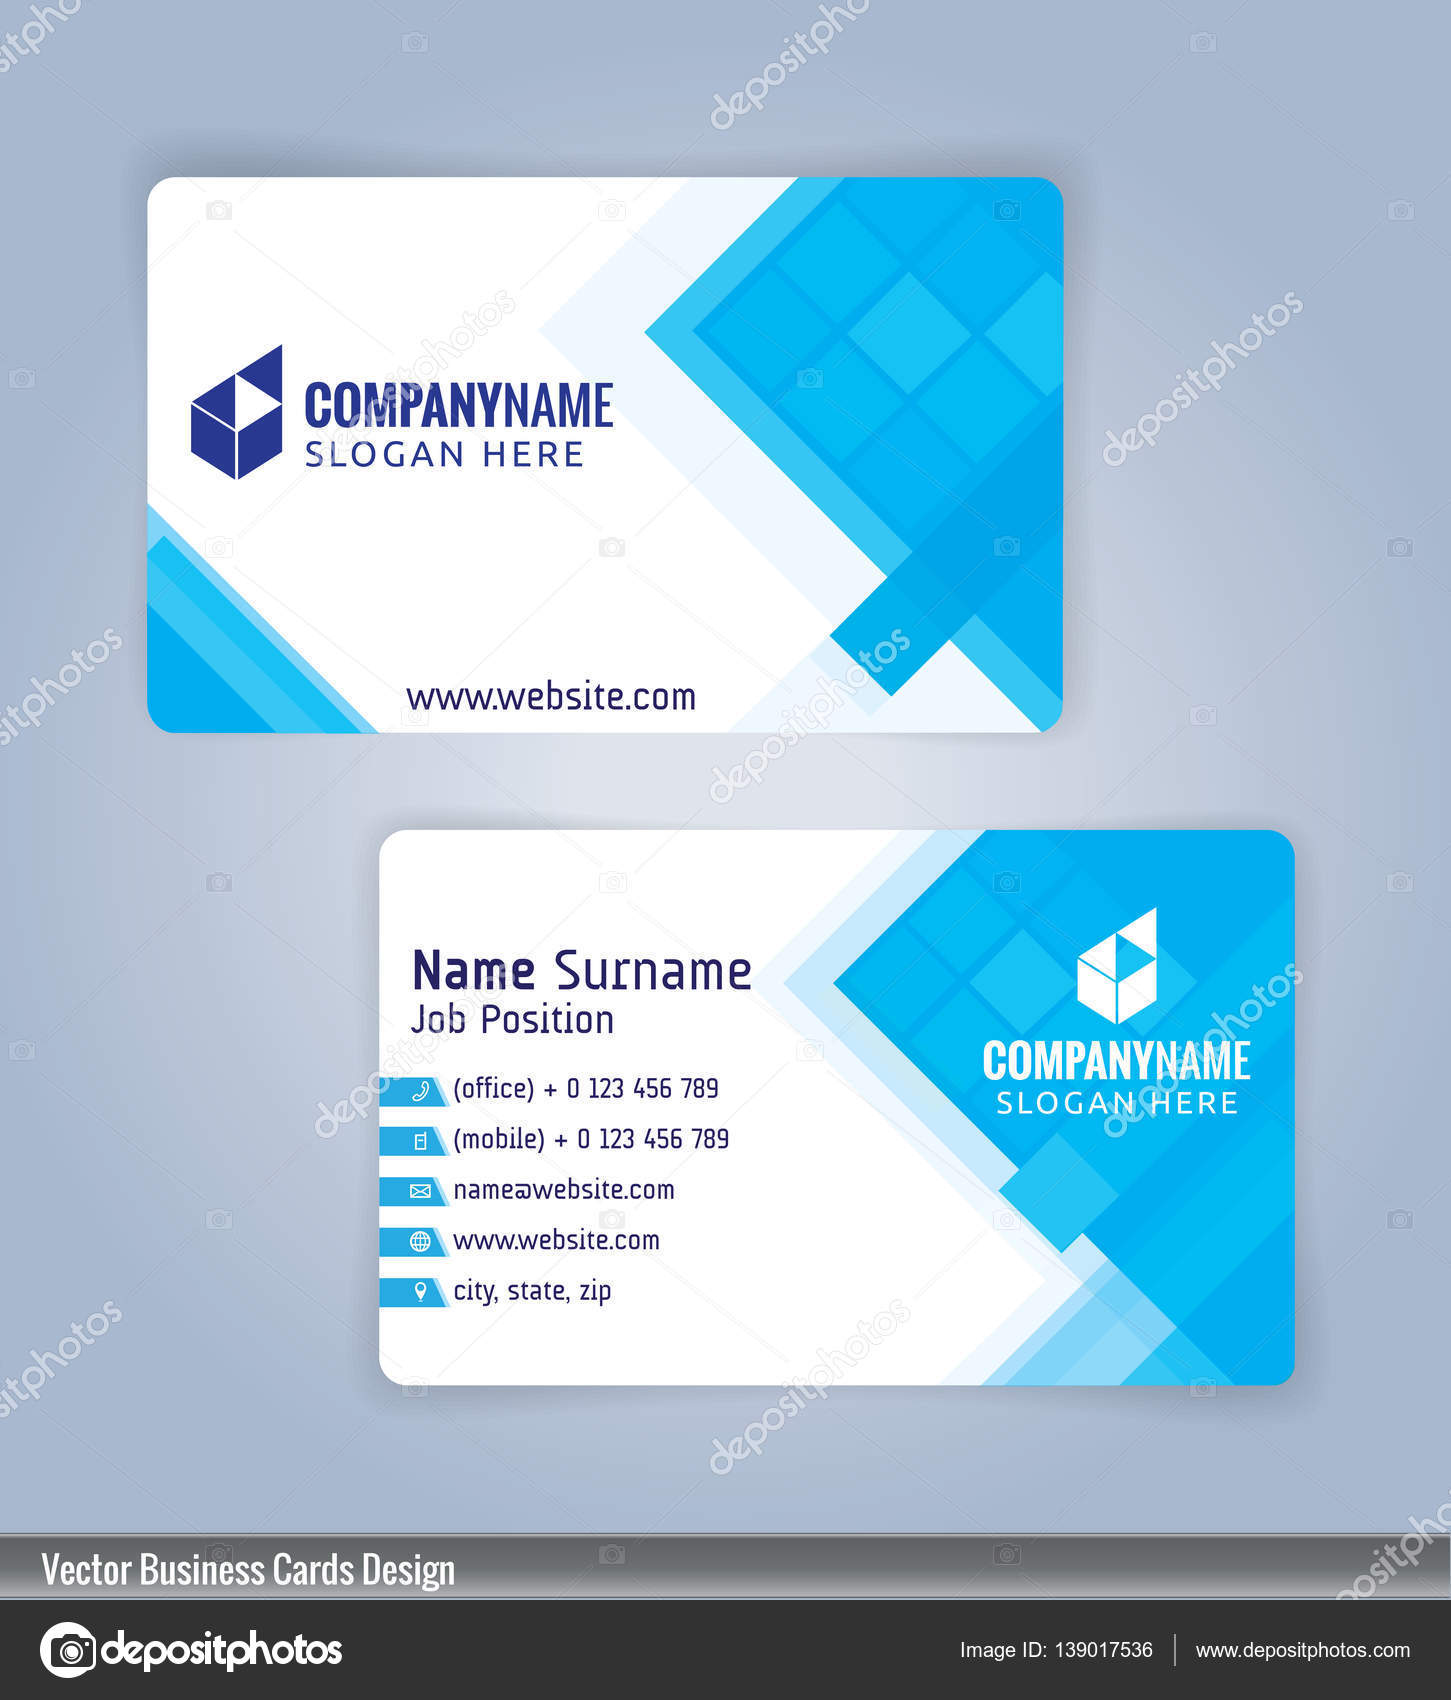 White and blue modern business card template illustration vector 10 white and blue modern business card template illustration vector 10 stock vector cheaphphosting Image collections